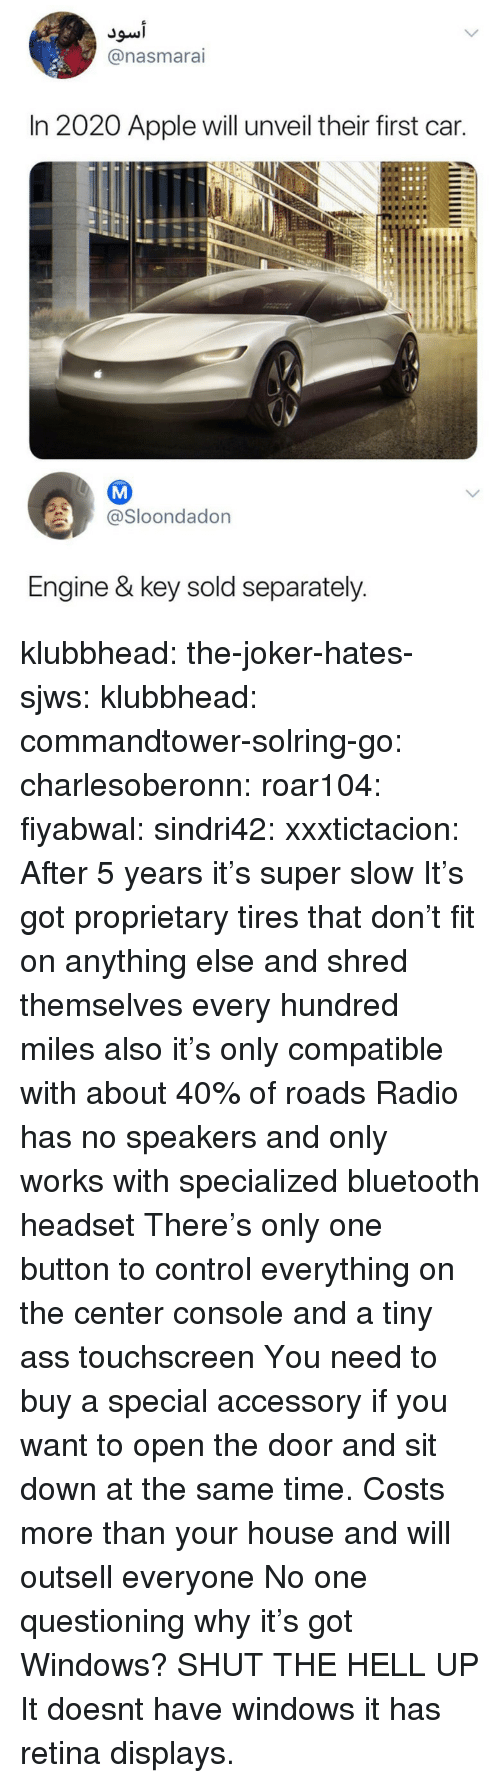 Shred: @nasmarai  In 2020 Apple will unveil their first car.  @Sloondadon  Engine & key sold separately klubbhead:  the-joker-hates-sjws:   klubbhead:  commandtower-solring-go:  charlesoberonn:  roar104:  fiyabwal:   sindri42:  xxxtictacion: After 5 years it's super slow  It's got proprietary tires that don't fit on anything else and shred themselves every hundred miles also it's only compatible with about 40% of roads   Radio has no speakers and only works with specialized bluetooth headset   There's only one button to control everything on the center console and a tiny ass touchscreen  You need to buy a special accessory if you want to open the door and sit down at the same time.   Costs more than your house and will outsell everyone   No one questioning why it's got Windows?   SHUT THE HELL UP   It doesnt have windows it has retina displays.